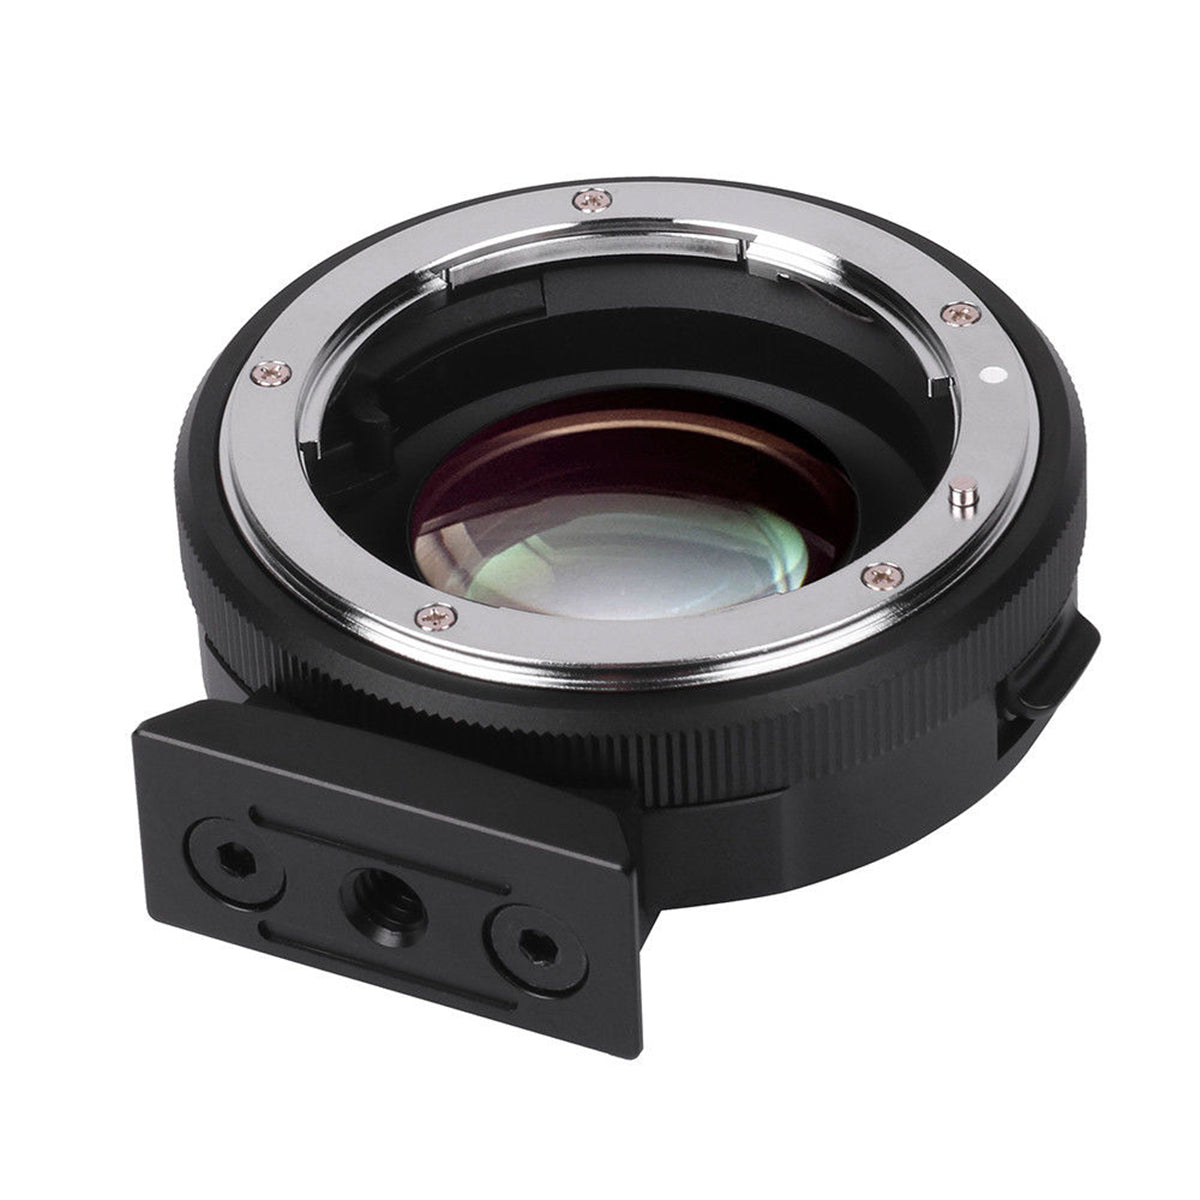 Viltrox NF-M43X Focal Reducer Speed Booster Adapter Turbo with Aperture for Nikon Lens to M4/3 Camera GH4 GH5GK GH85GK GF7GK GX7